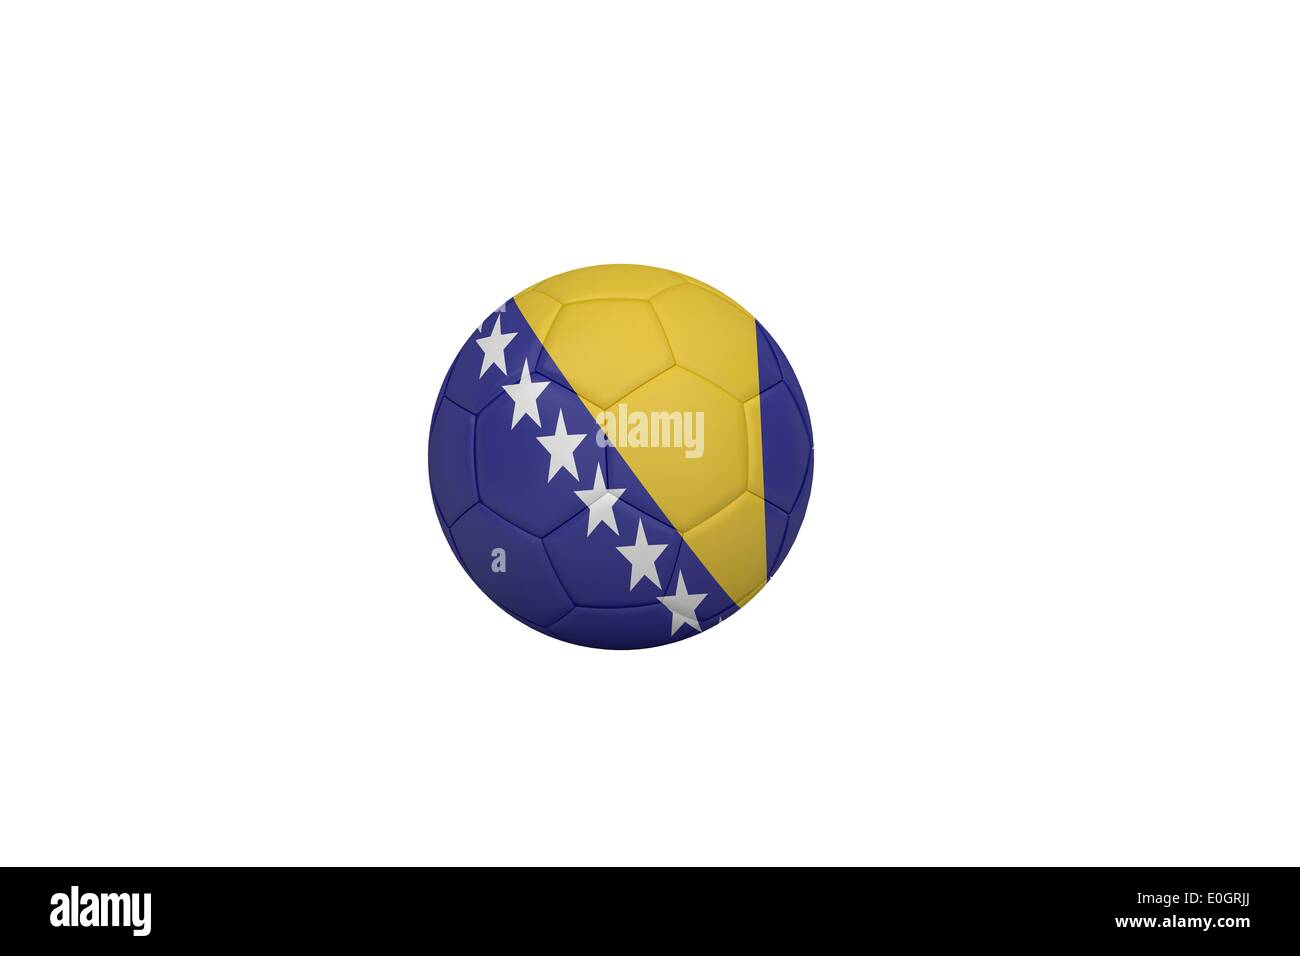 Football in bosnia and herzegovina colours - Stock Image